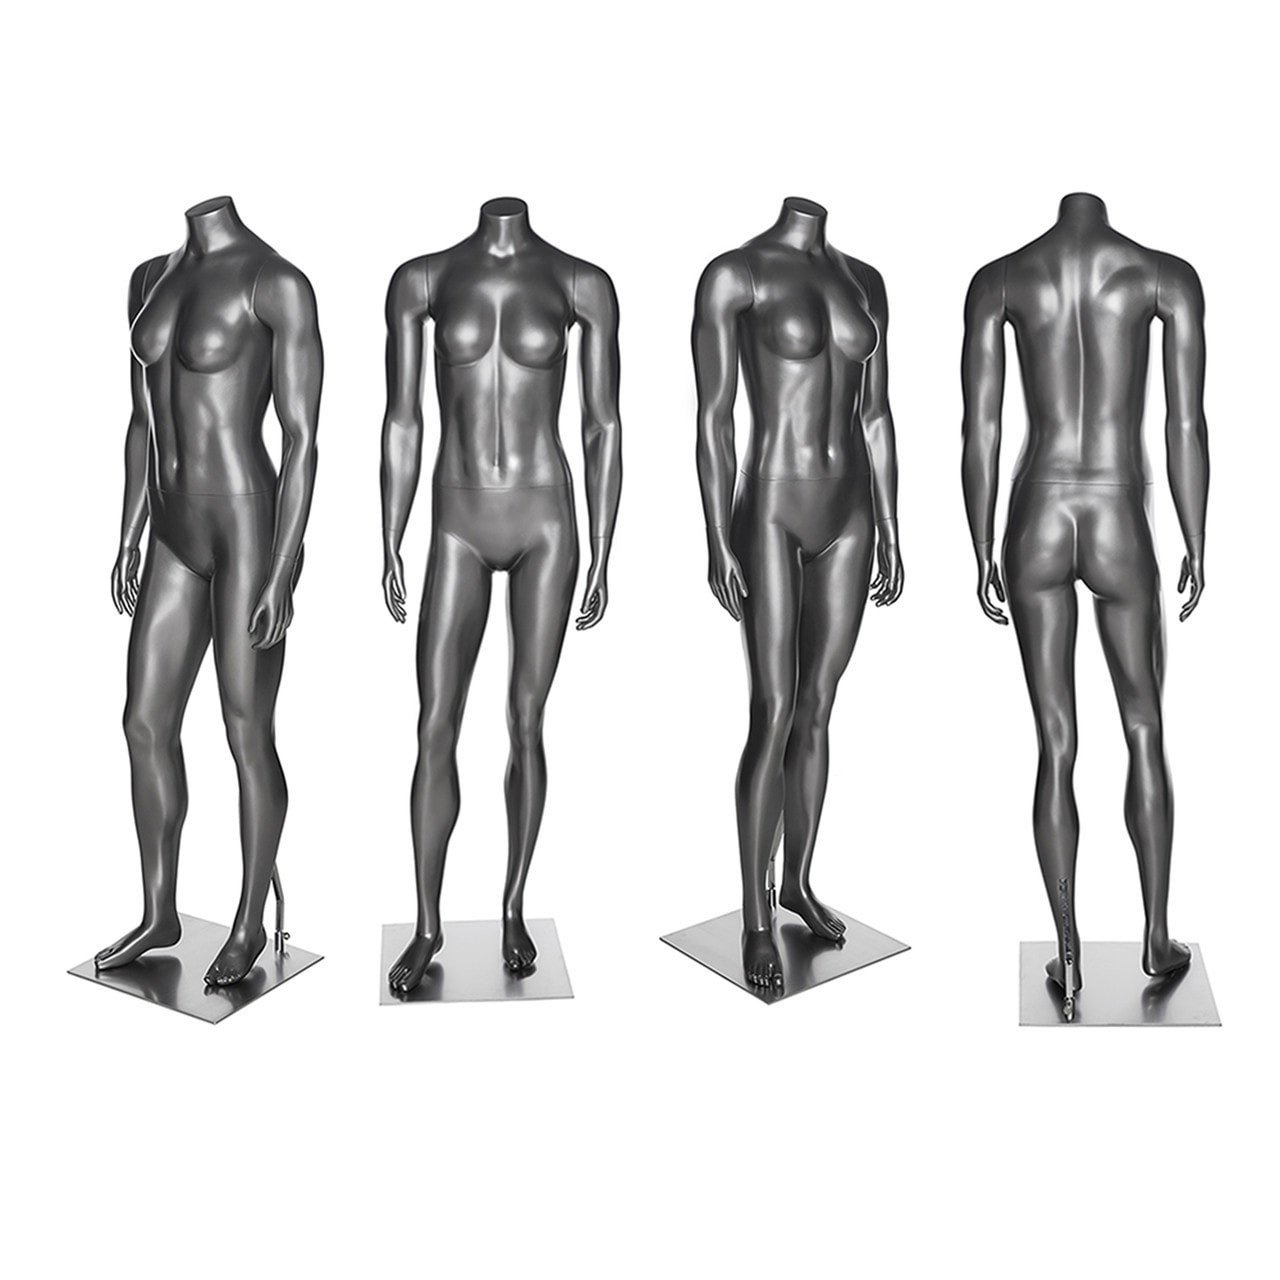 ZM-1505 - Lara - Silver Headless Supple Female Mannequin